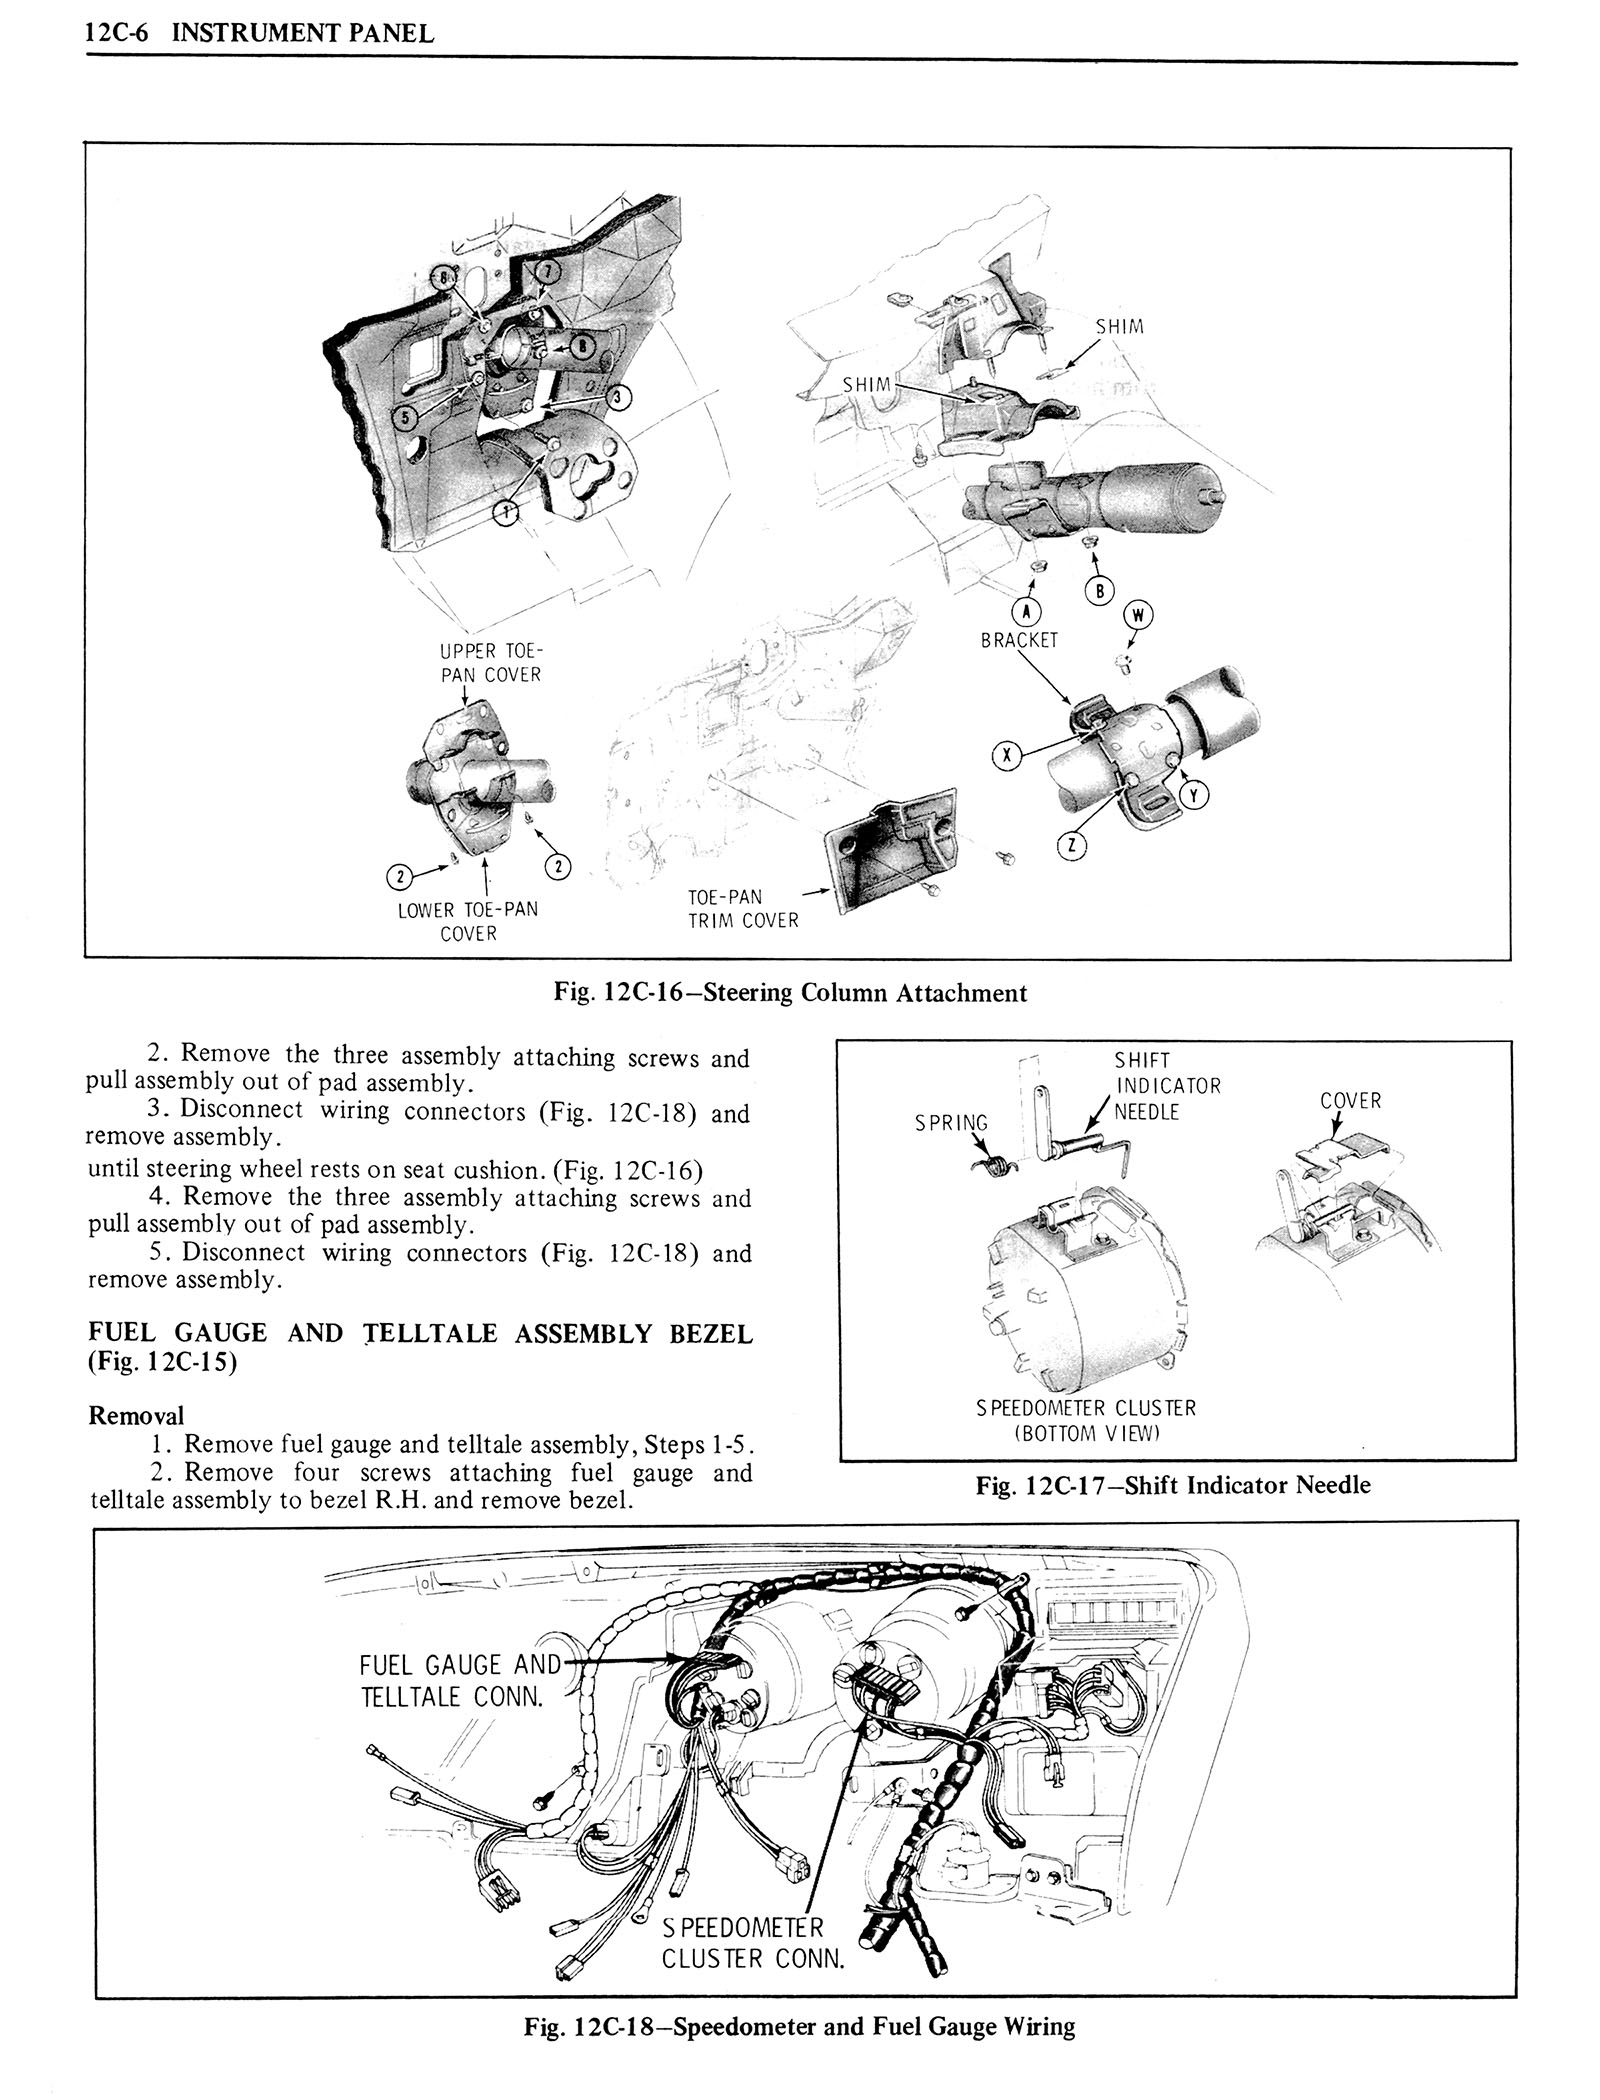 1976 Oldsmobile Service Manual page 1254 of 1390